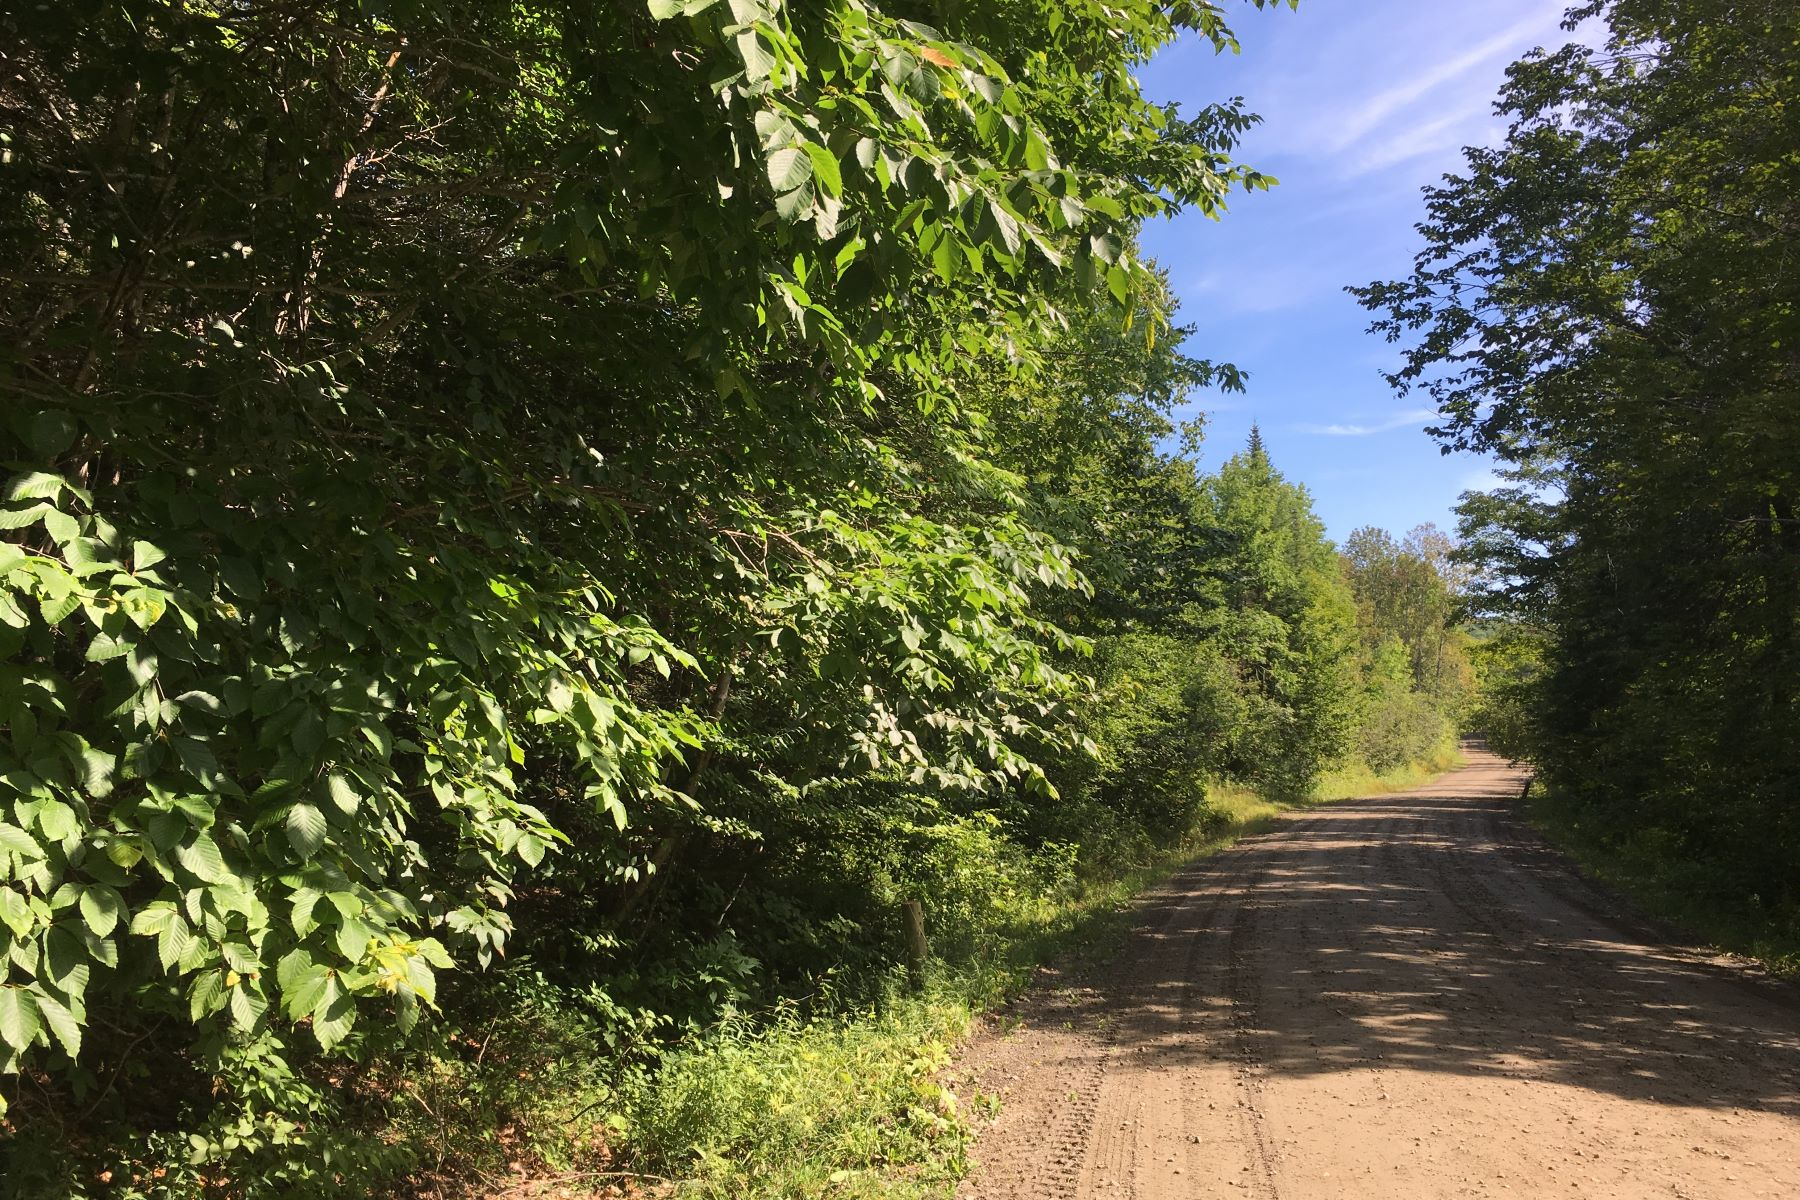 أراضي للـ Sale في Lot 3 Hart Hollow Road, Washington Lot 3 Hart Hollow Rd Washington, Vermont, 05675 United States